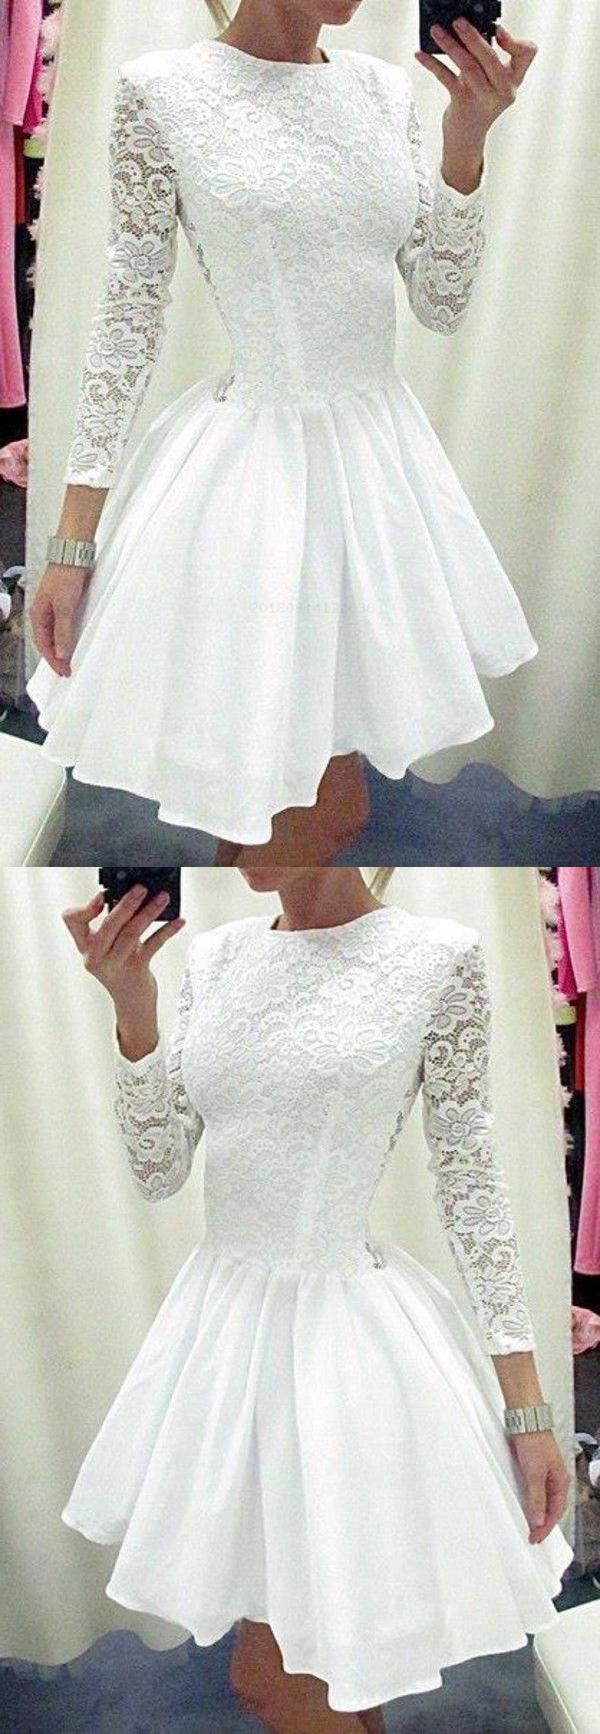 White Homecoming Dresses Beautiful Homecoming Dresses White Lace Prom Dress Lace Homecoming Dr White Lace Prom Dress Lace Homecoming Dresses Ball Gowns Prom [ 1734 x 600 Pixel ]